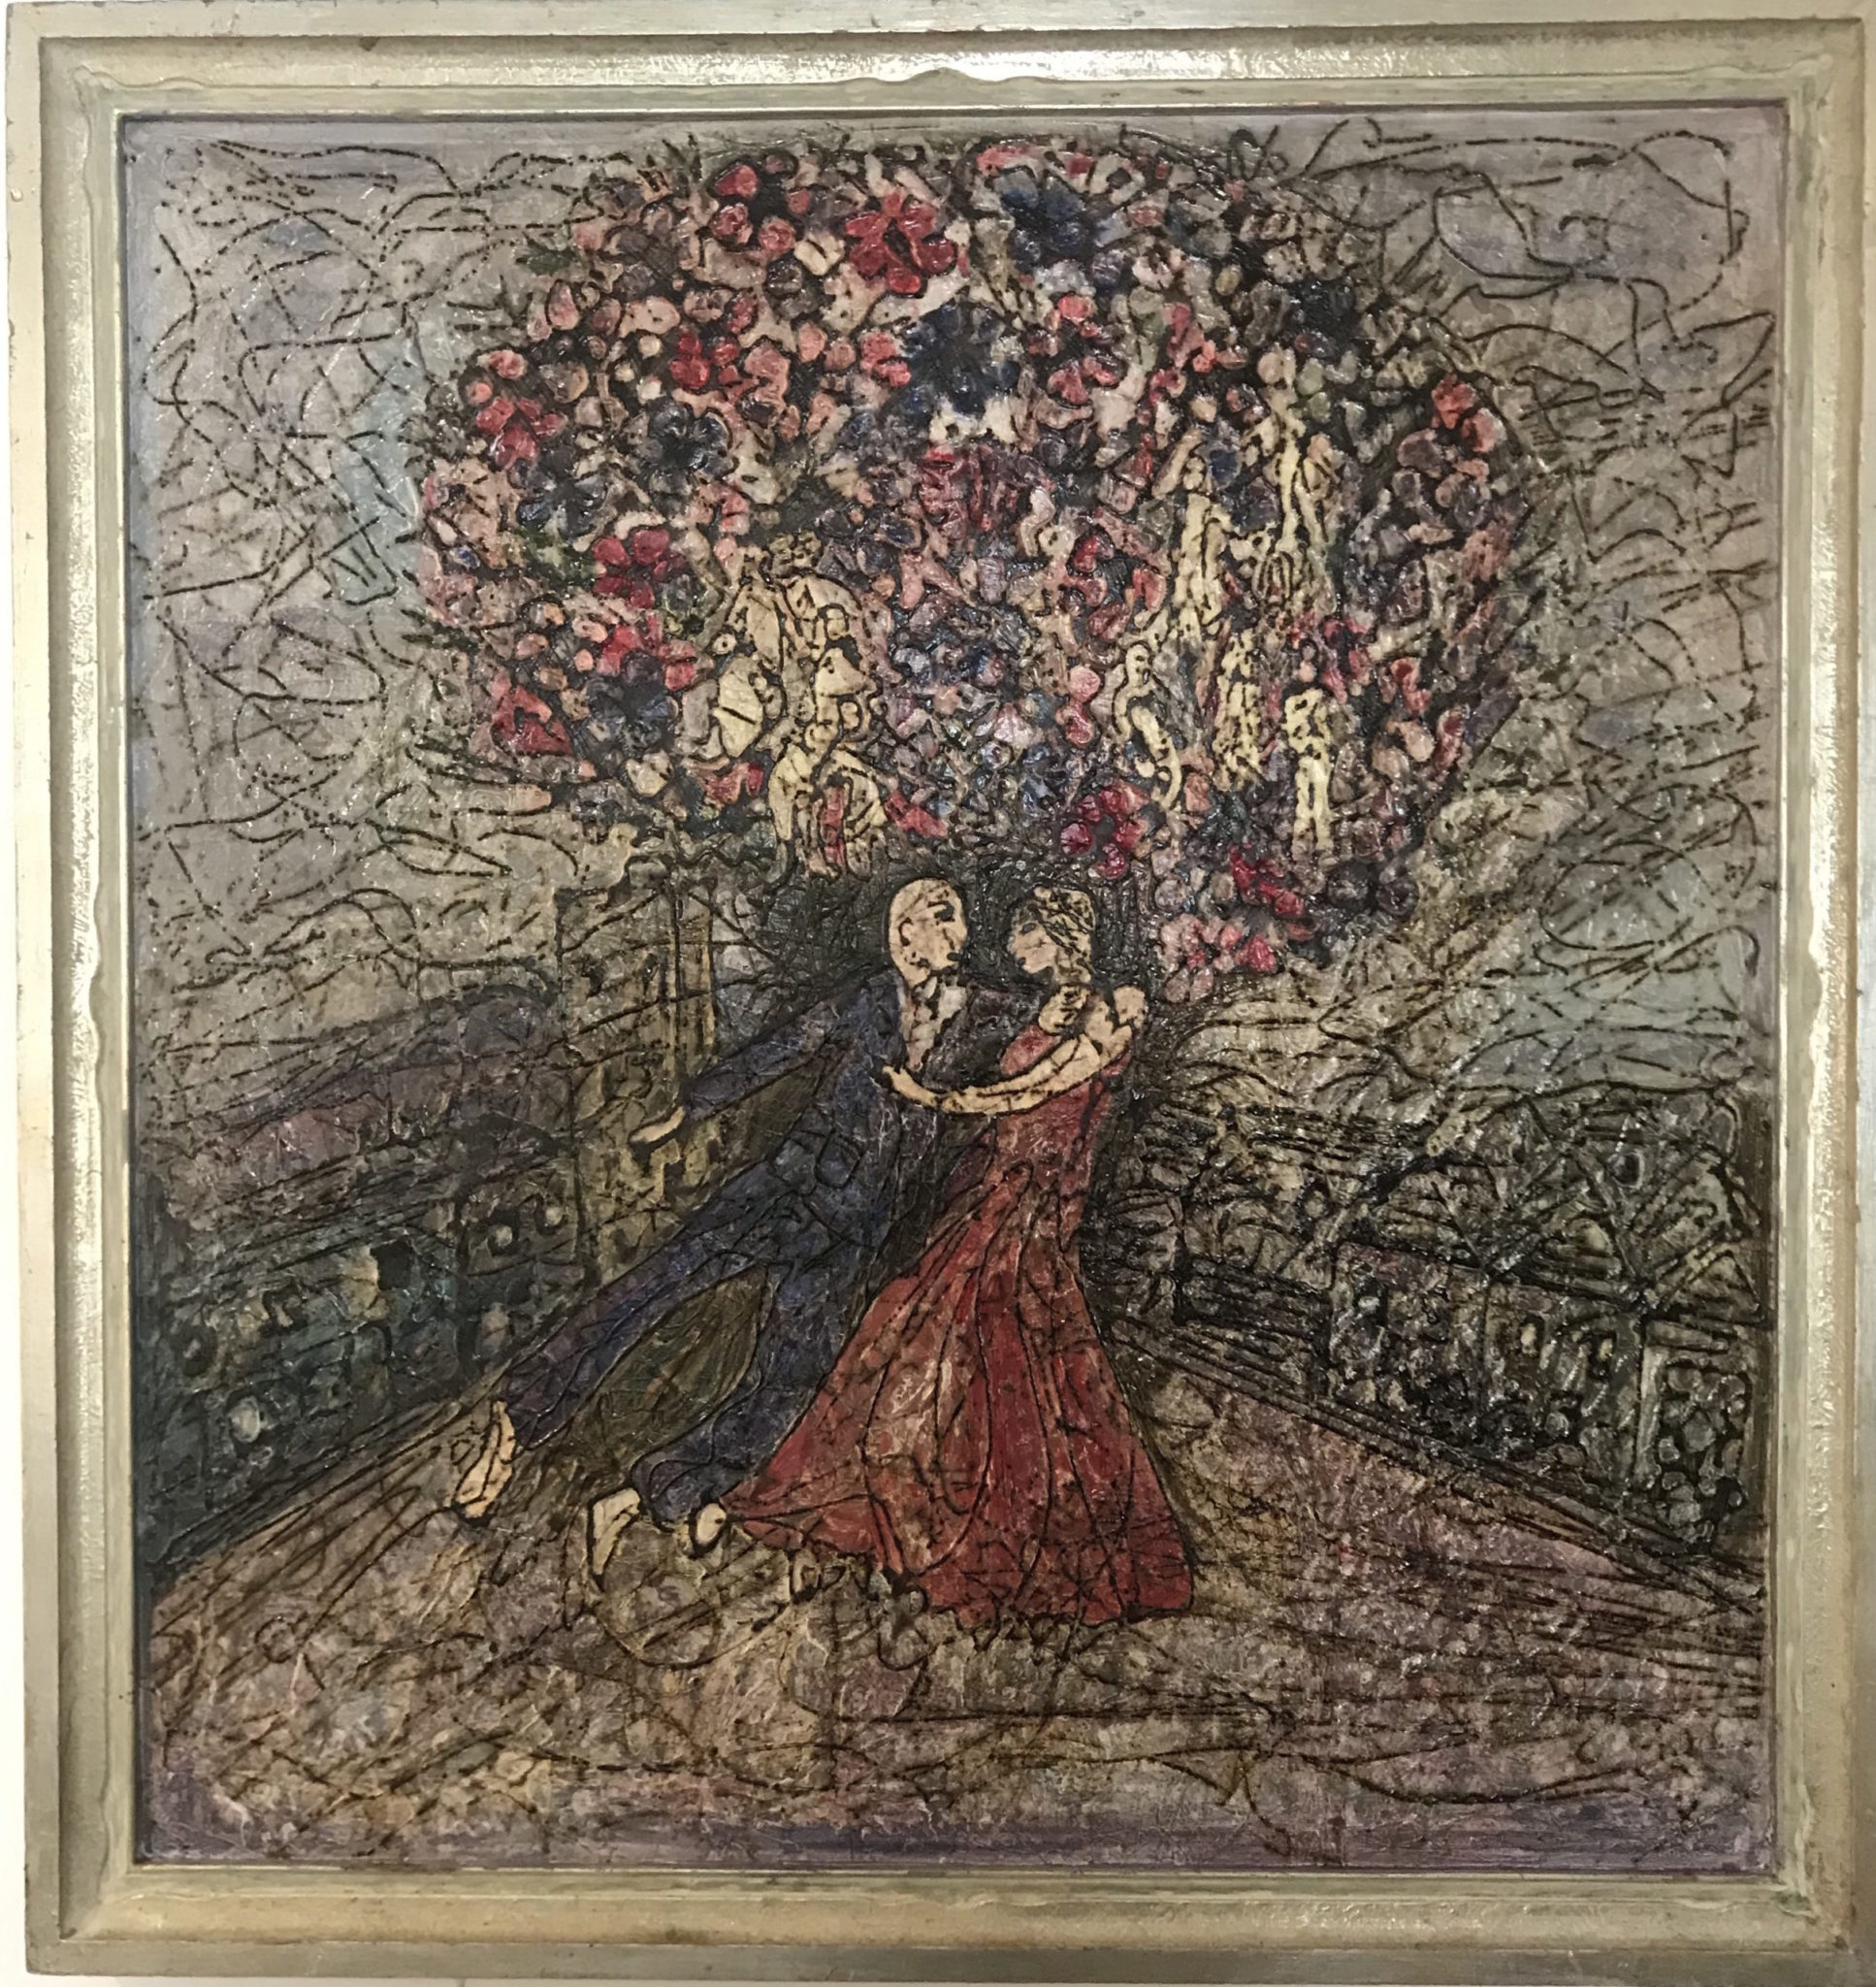 Everyone loves a Chagall – this weeks painting blog